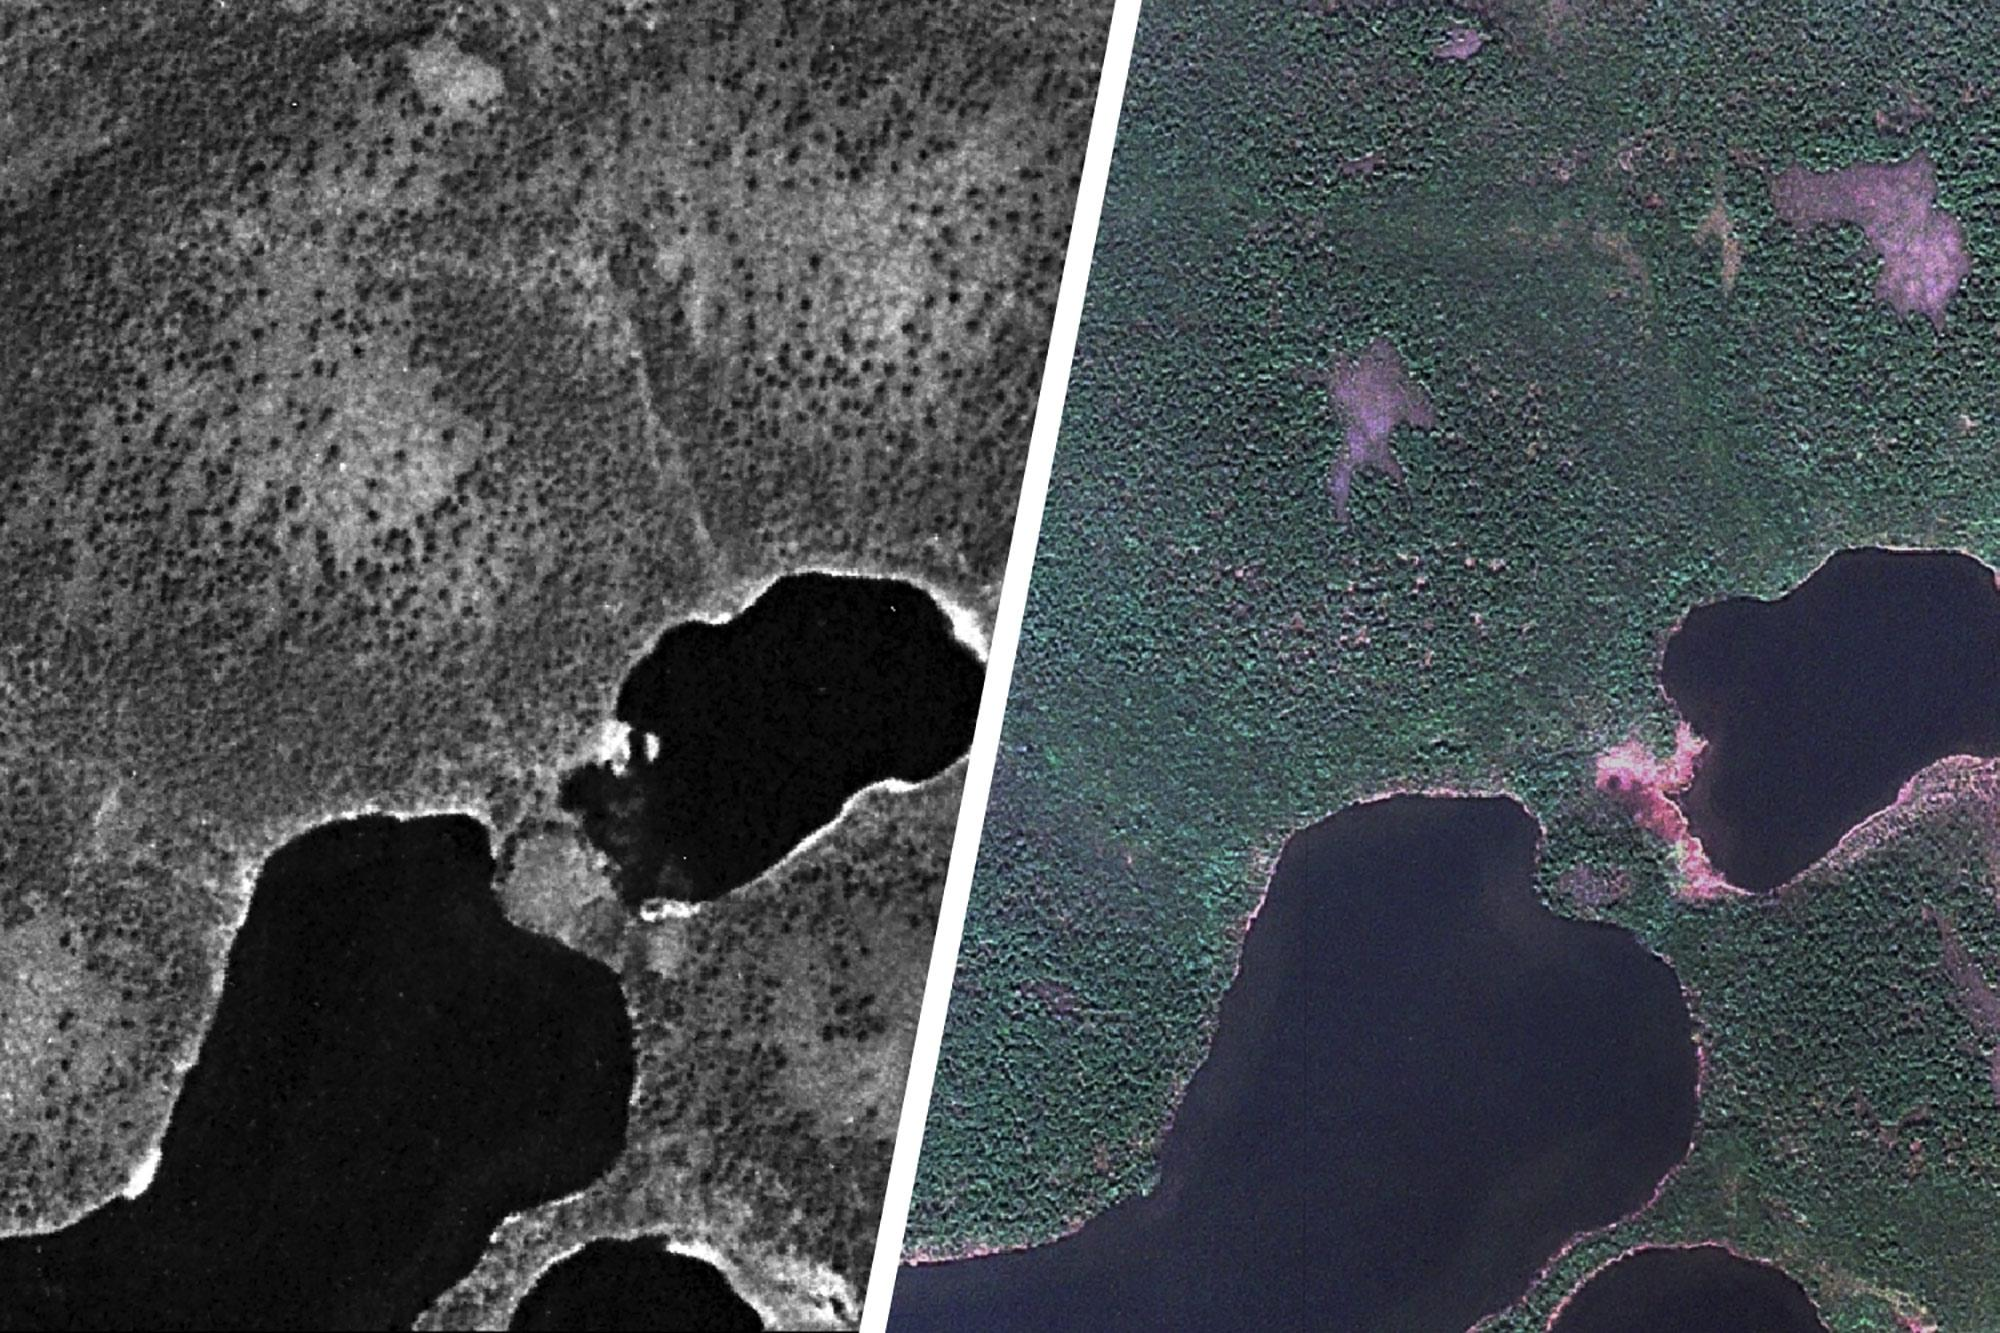 A July 1966 U.S. spy satellite photo of Arctic tundra in the western Taymyr Peninsula and a July 2009 commercial satellite image of the same location shows considerable expansion of vegetation during the 43-year interval.